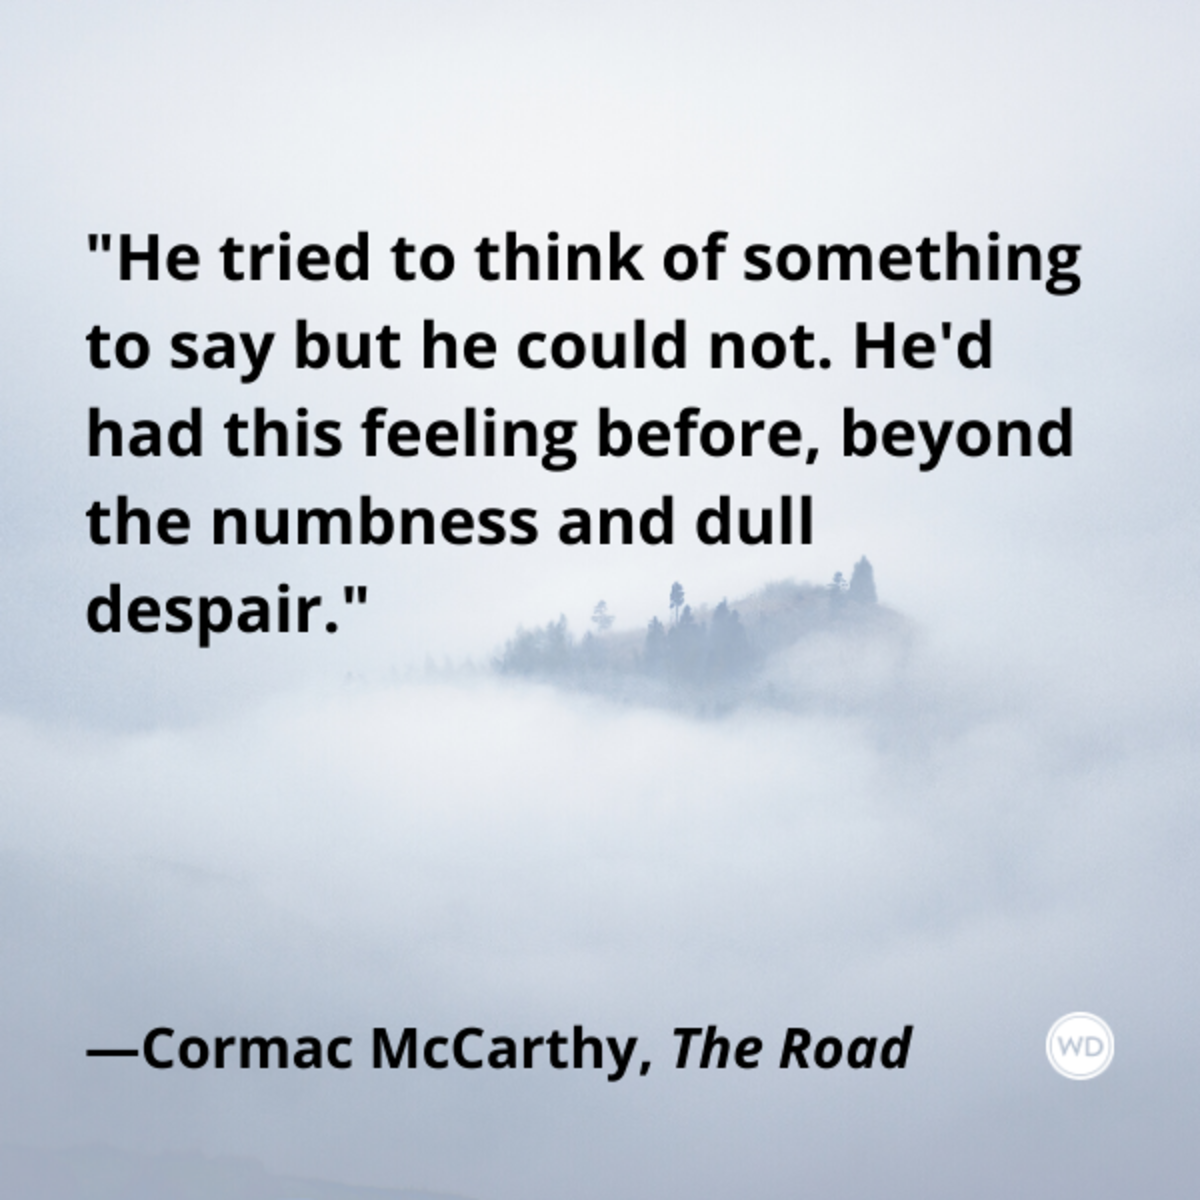 cormac_mccarthy_the_road_quotes_he_tried_to_think_of_something_to_say_but_he_could_not